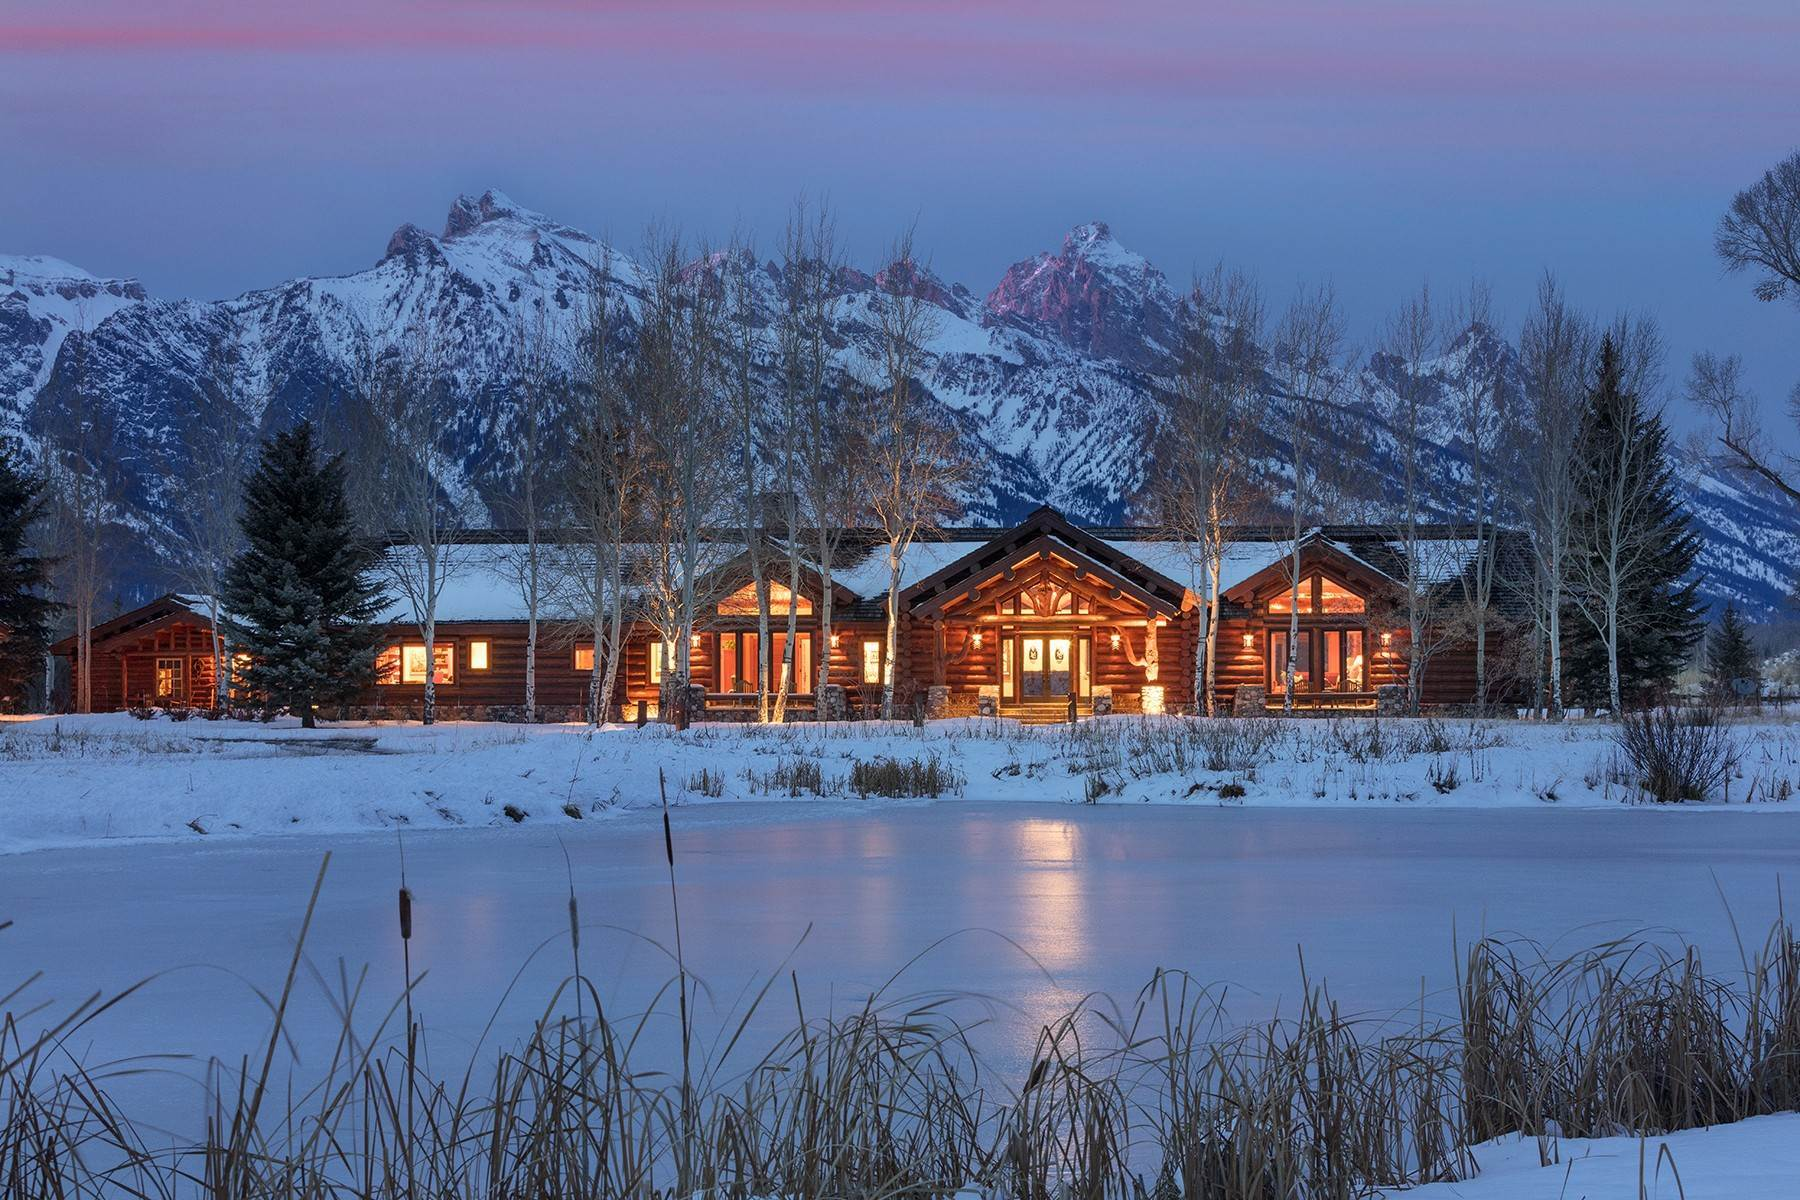 Single Family Homes for Sale at 6670 Lower Cascade Drive Jackson, Wyoming 83001 United States